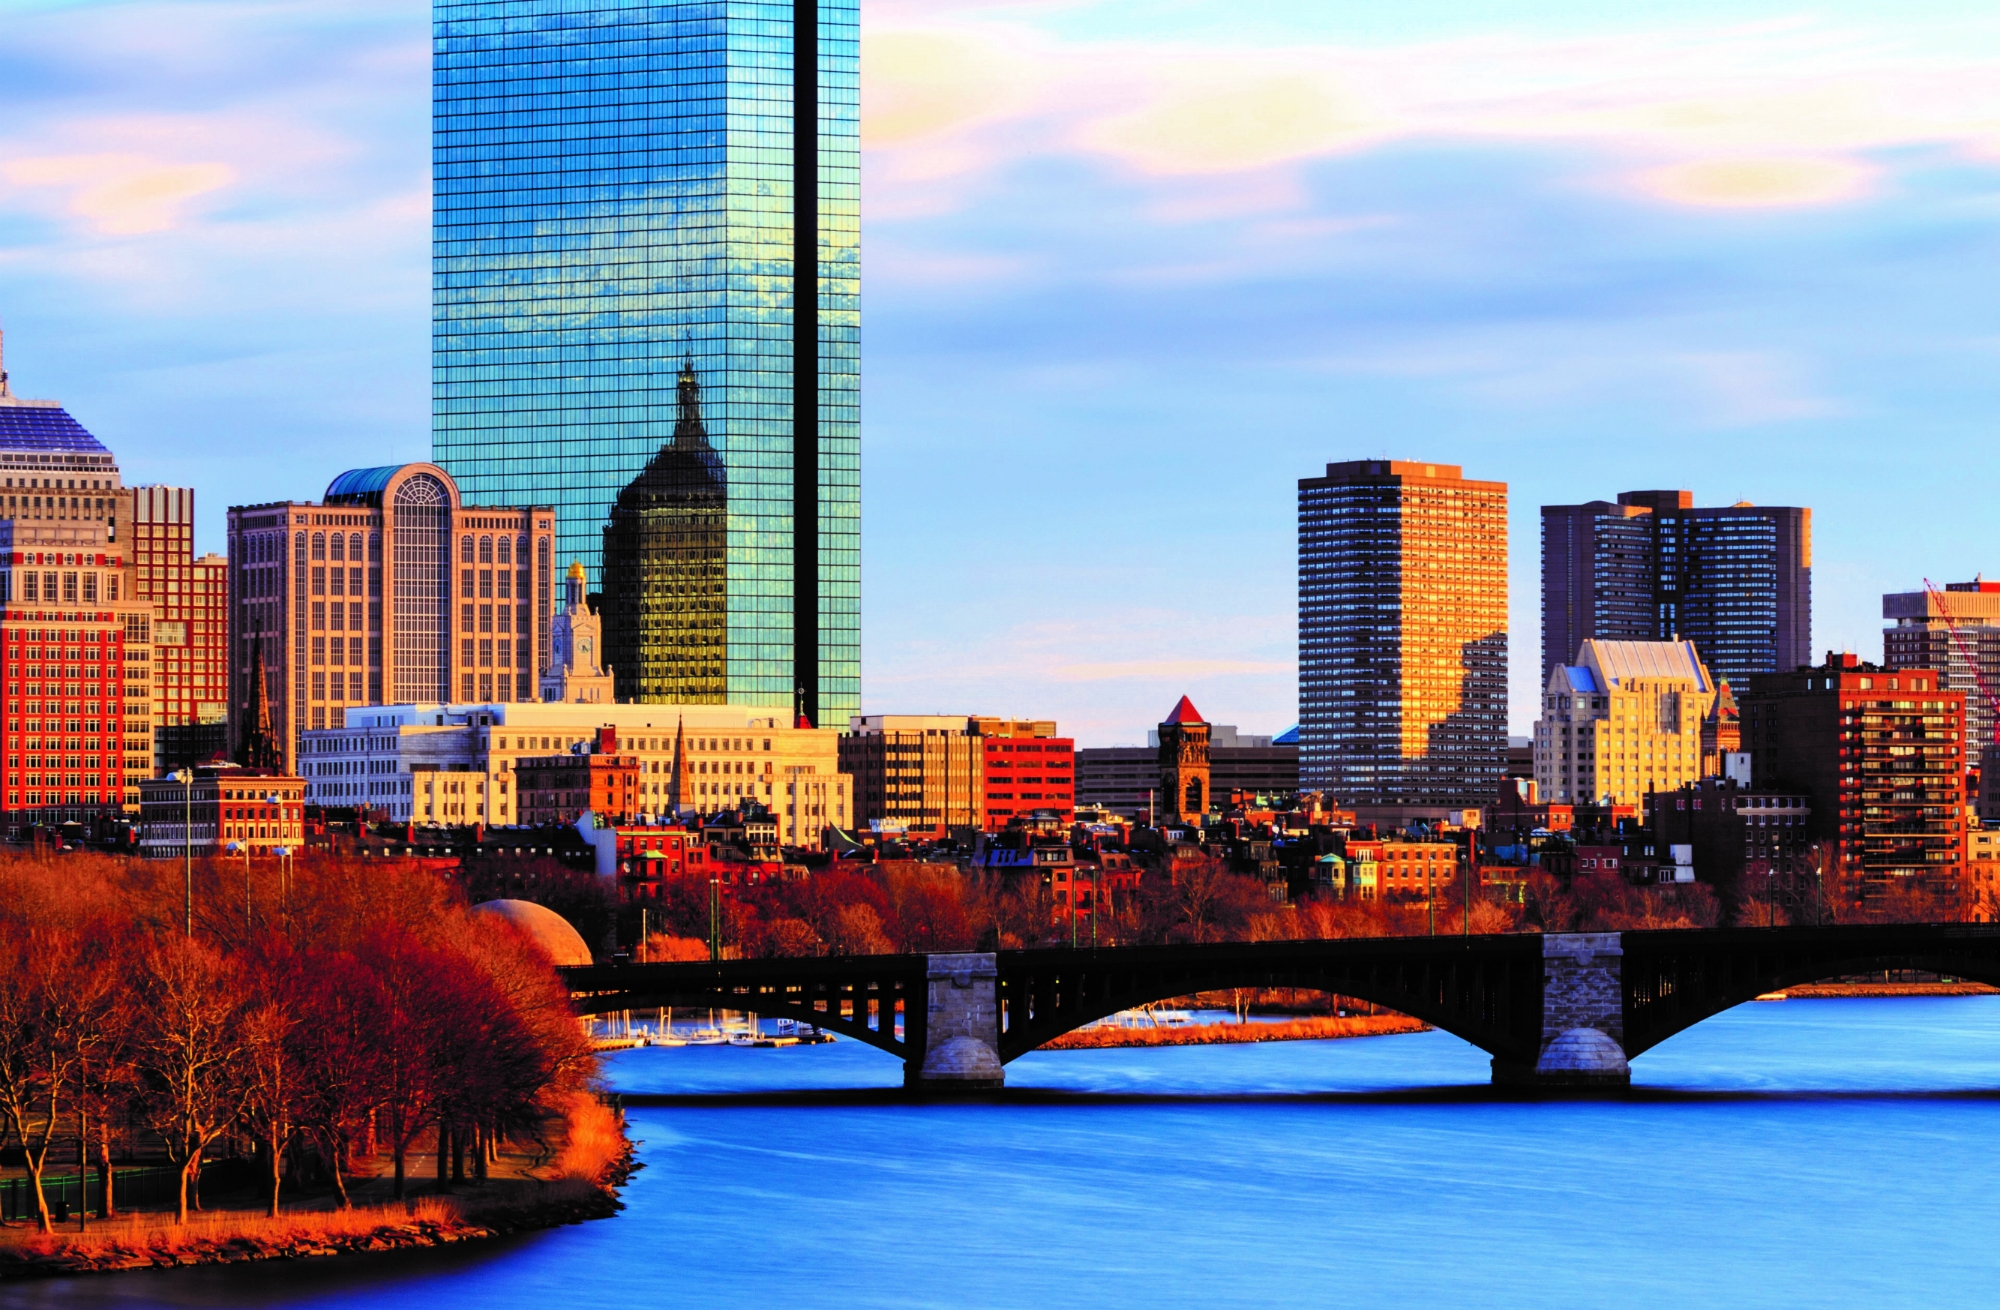 Image of charles river and boston